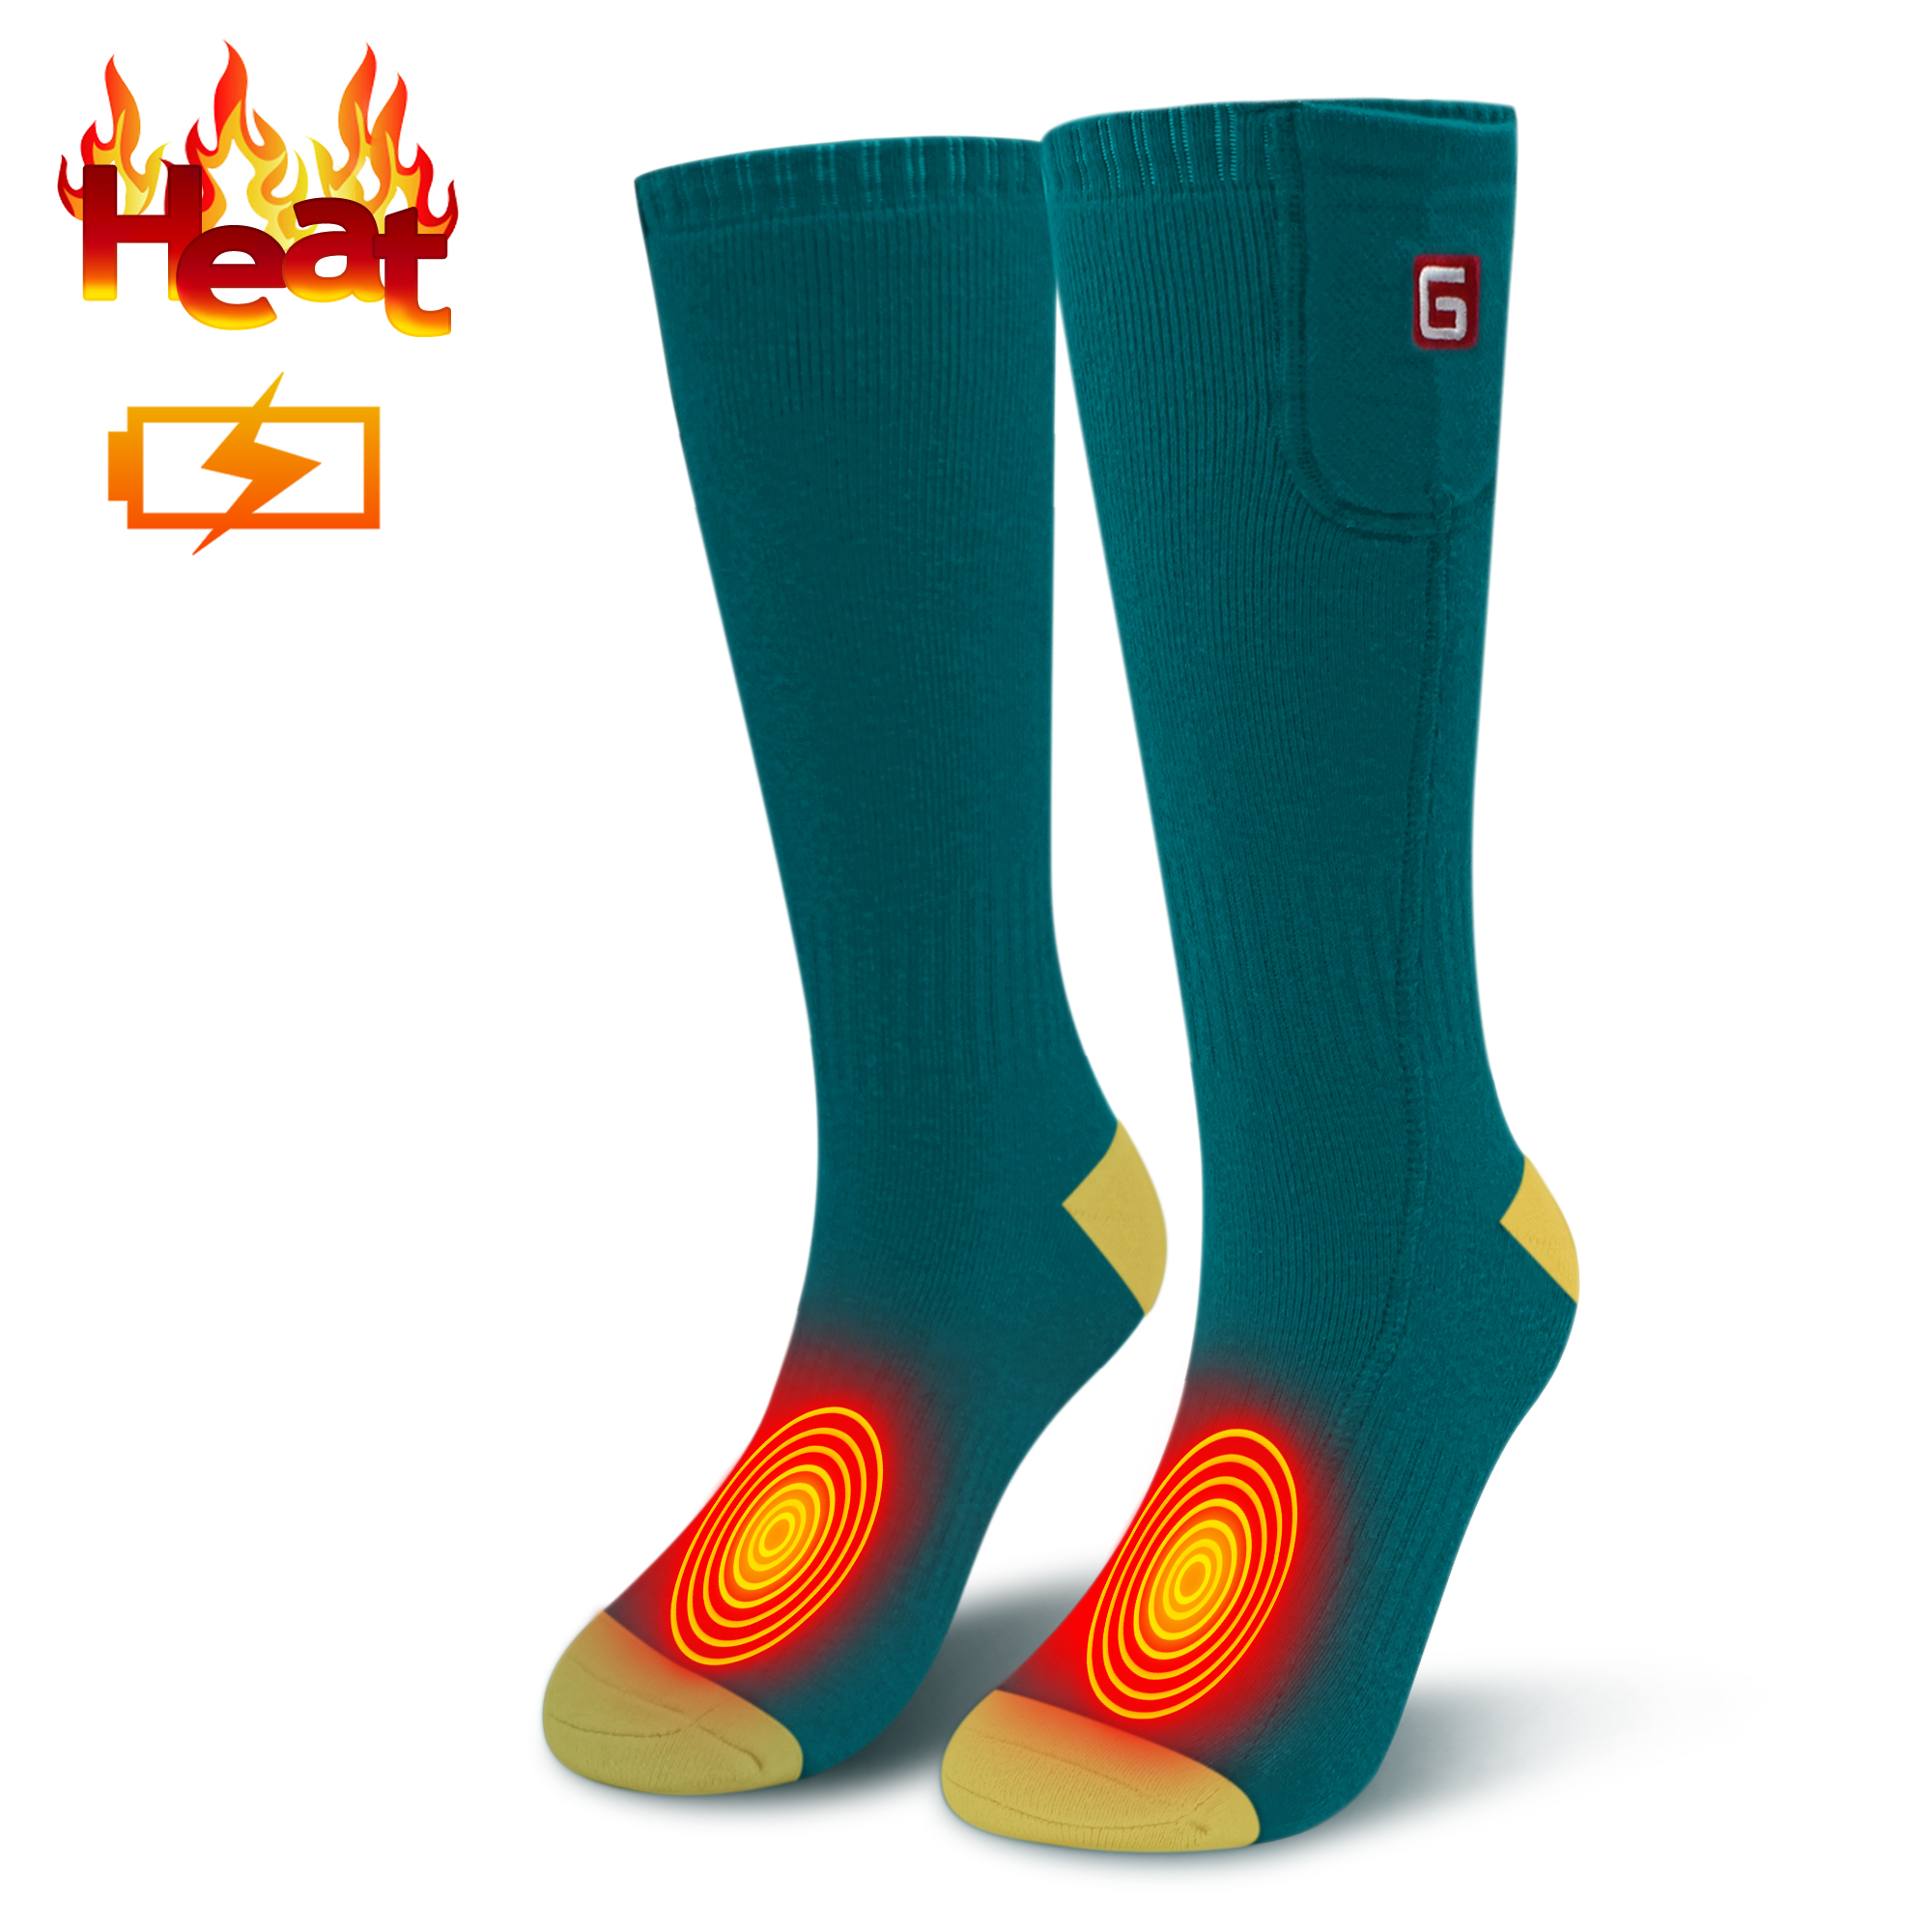 Heated Clothing Electric Clothing Heated Socks Heated Gloves >> 3 7v Electric Heated Socks Rechargeable Battery Powered Heating Sox Men Women Winter Warm Socks Chronically Cold Feet Green Yellow One Size